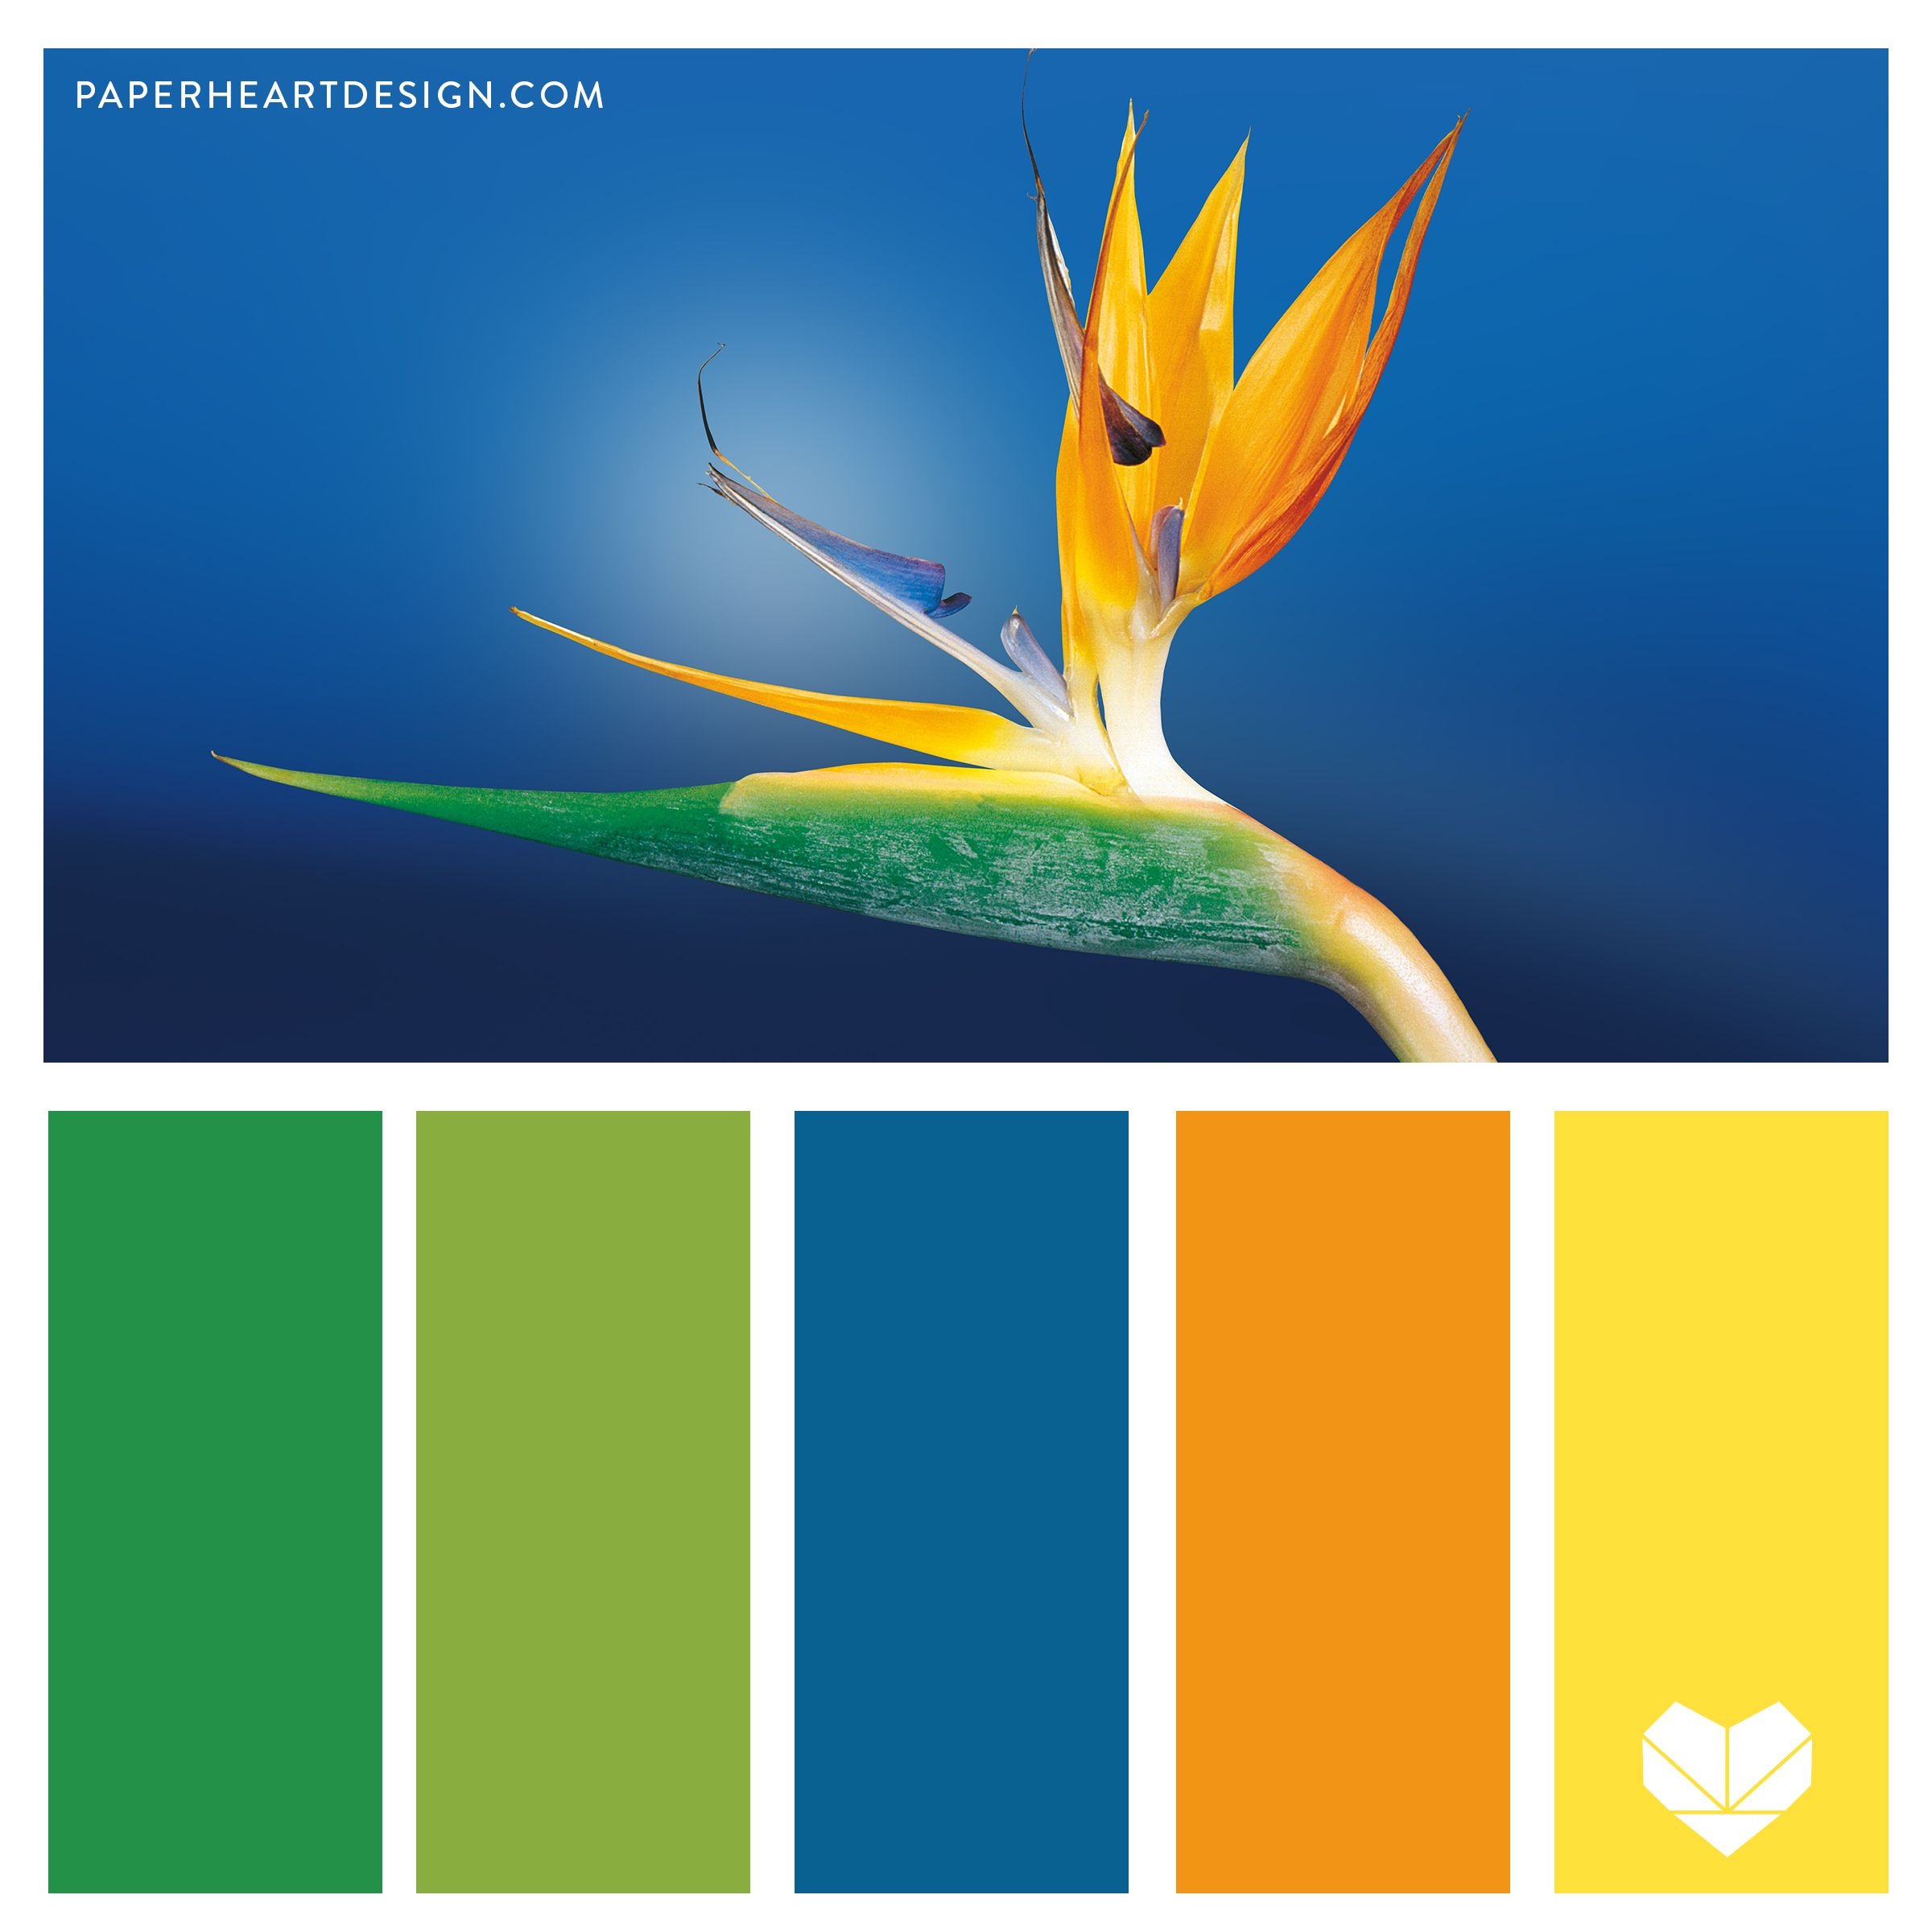 Pantone Color of the Year 2020: Classic Blue Color Palettes, Bird of Paradise Logo